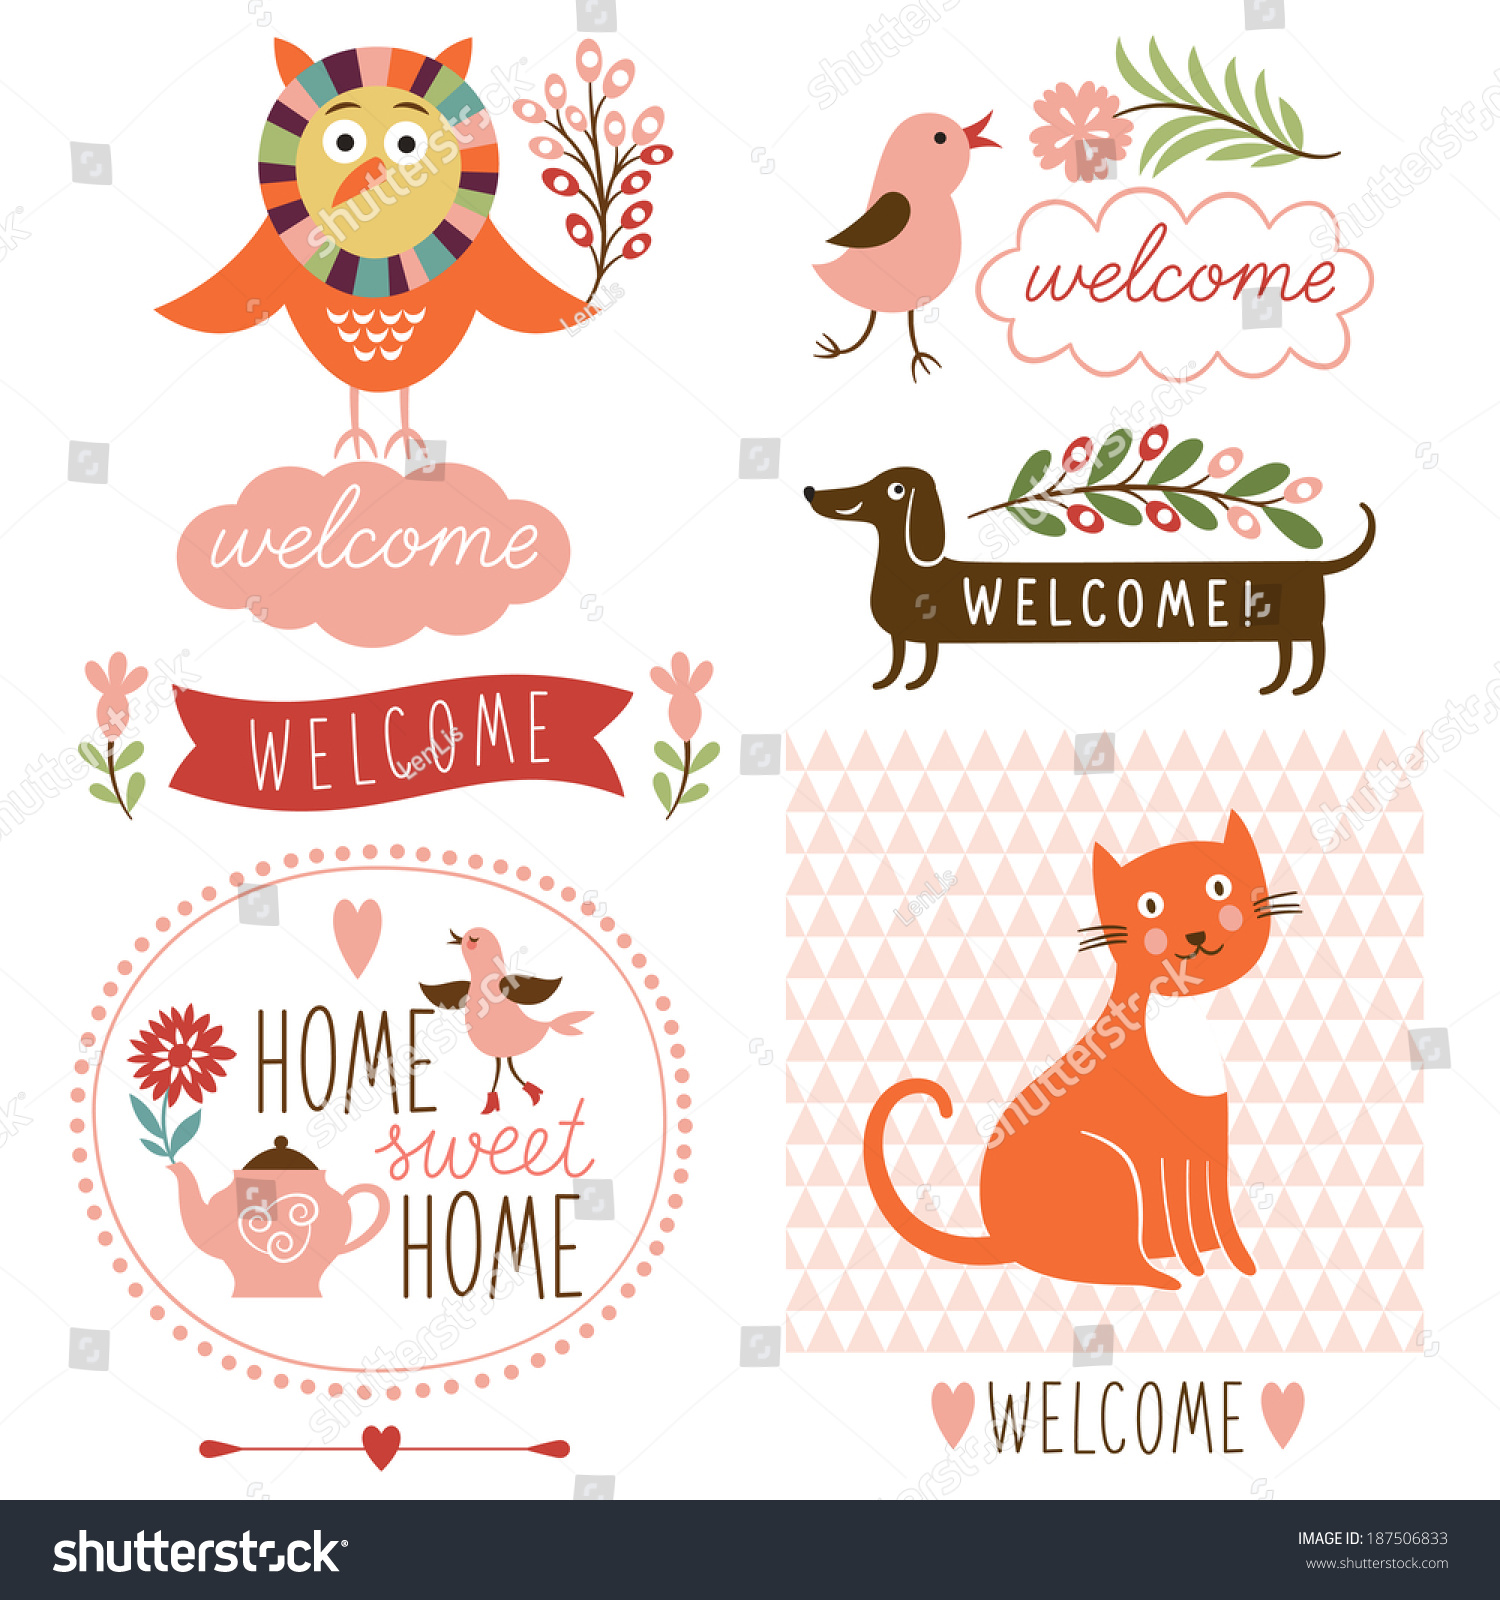 Welcome home decor elements stock vector illustration for Welcome home decorations